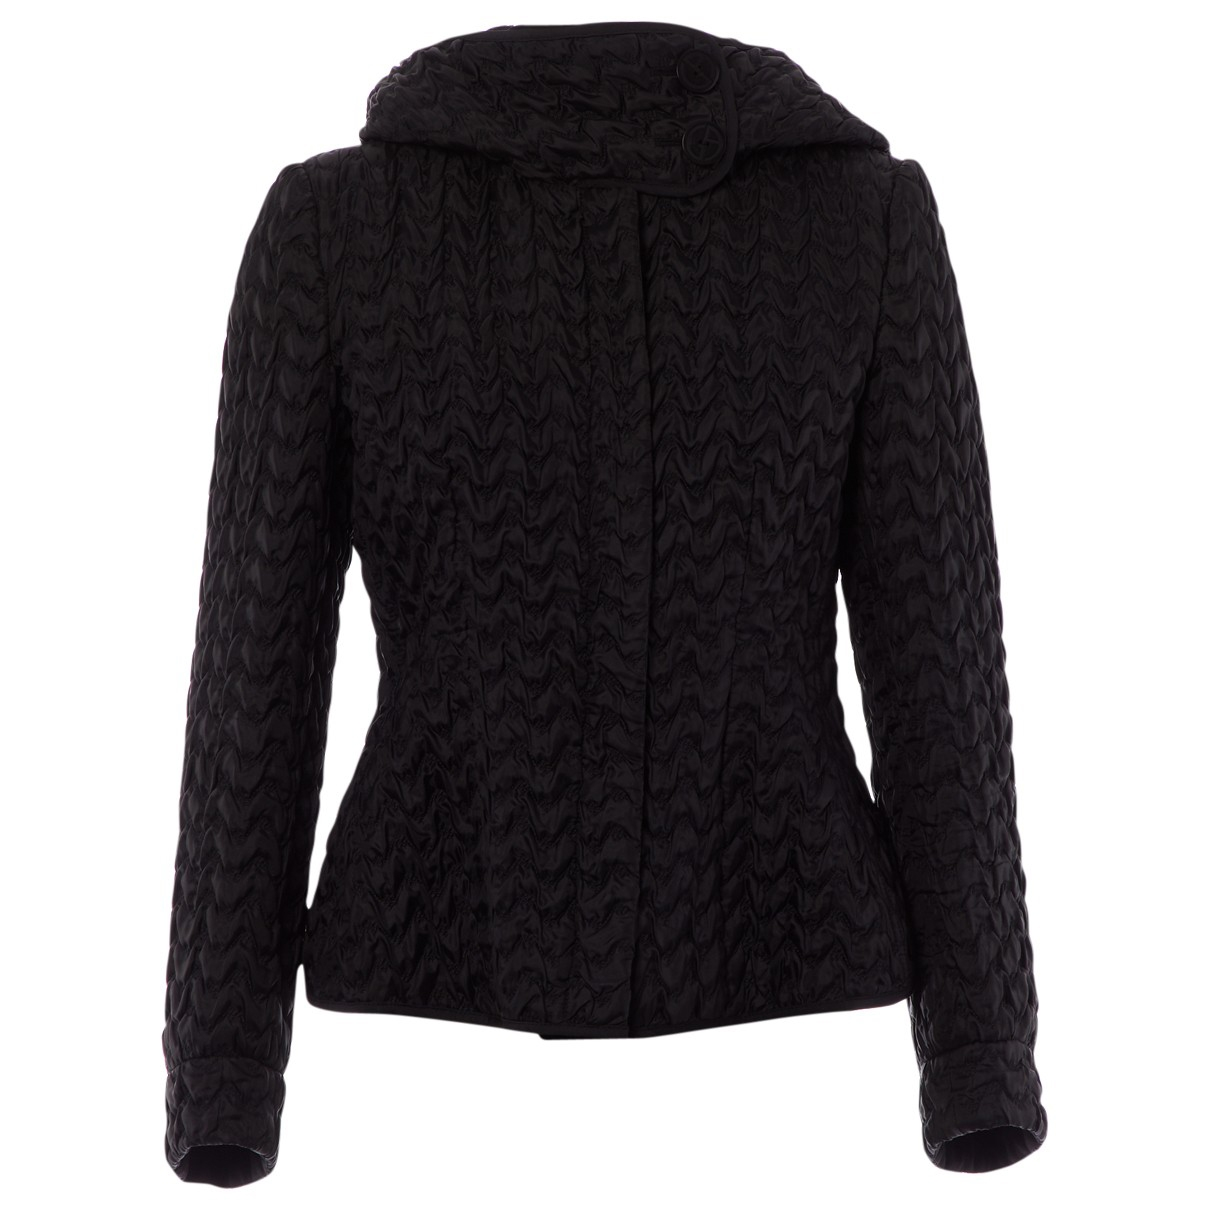 Giorgio Armani \N Black jacket for Women 42 IT